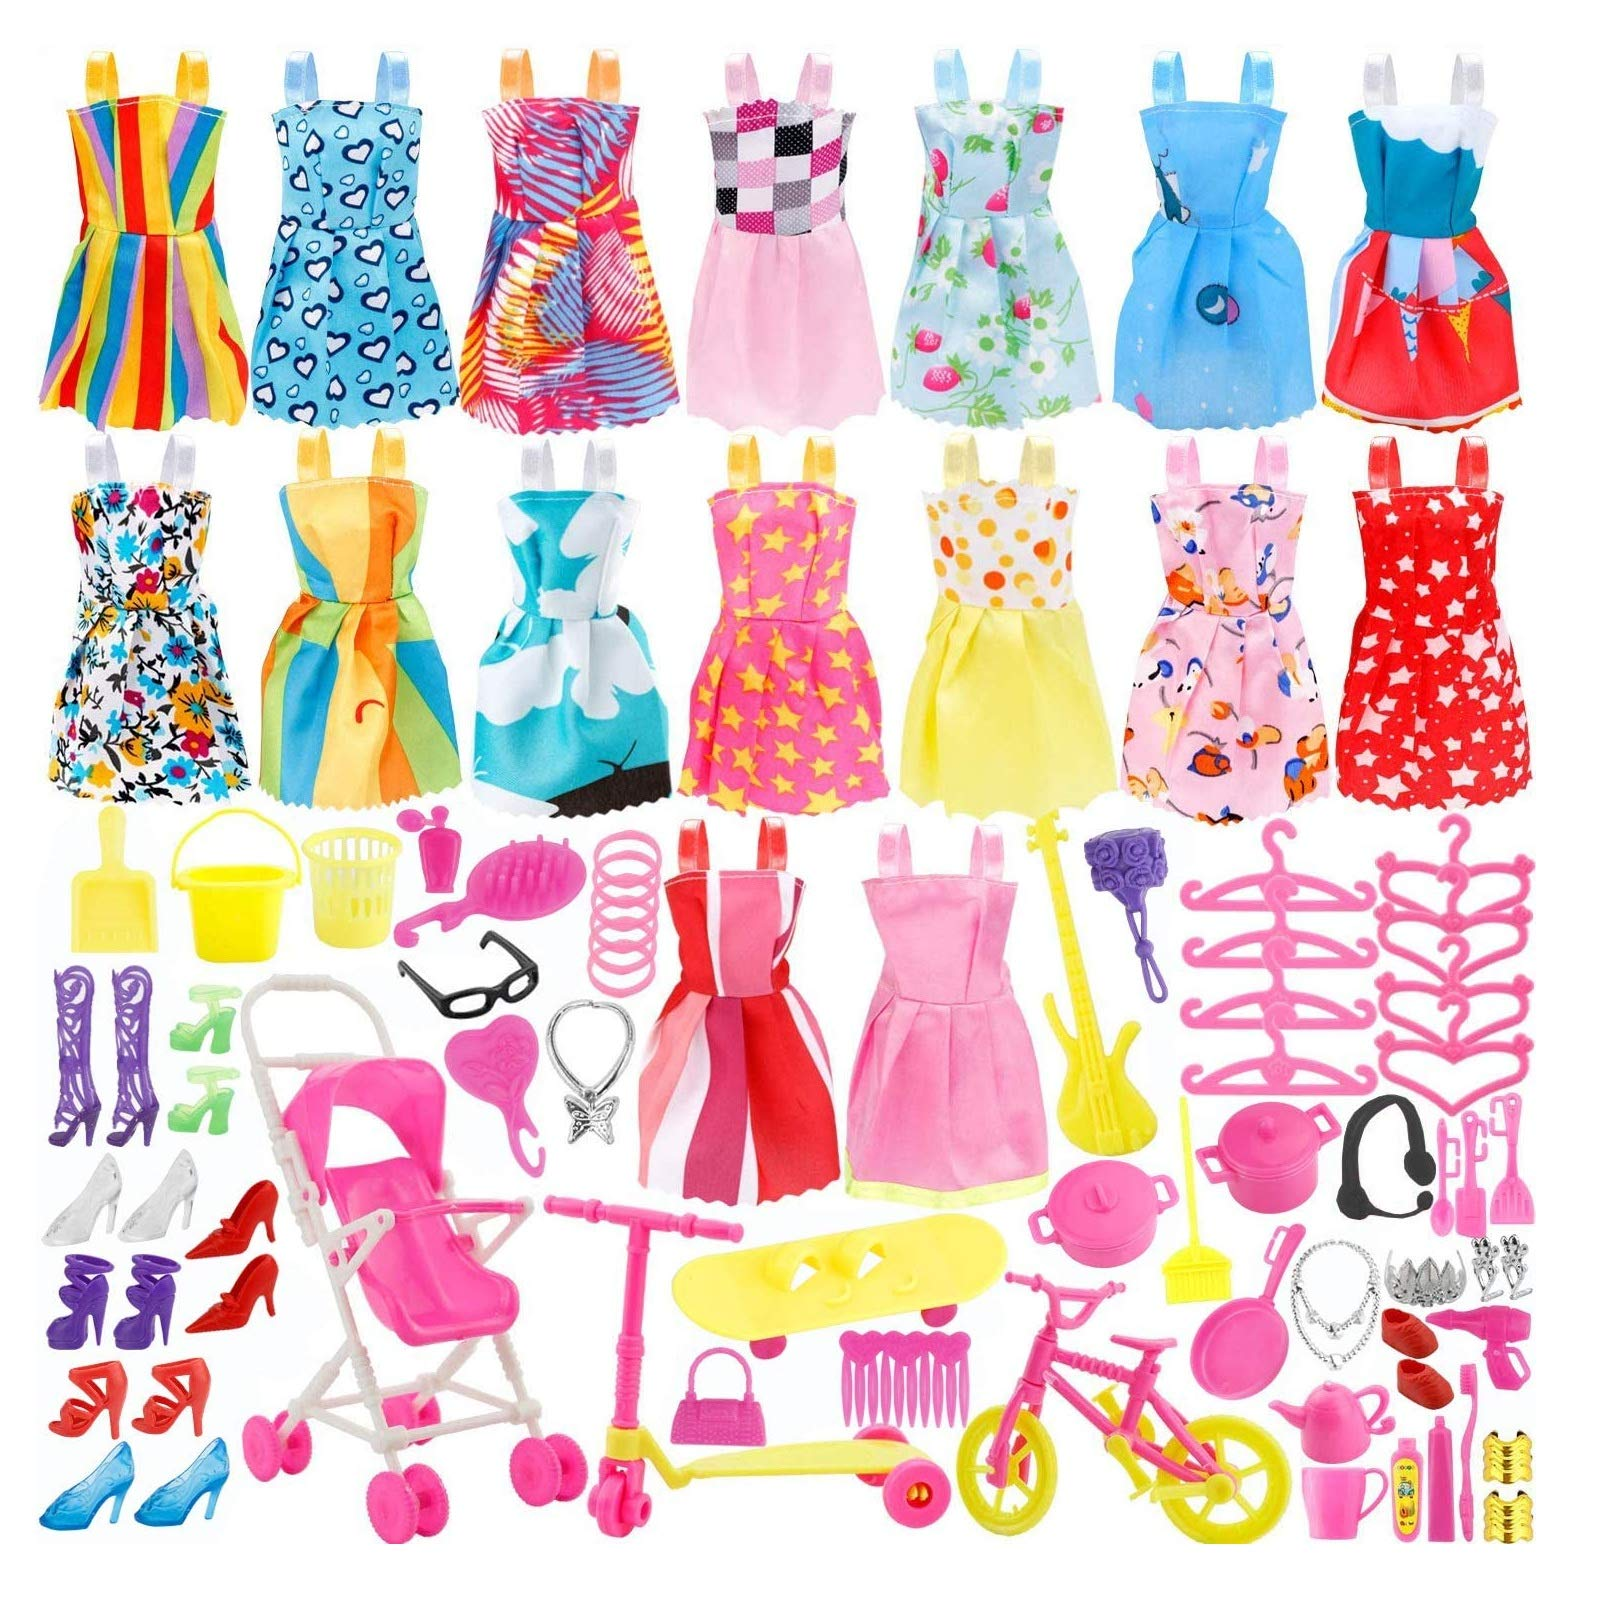 JANYUN Dolls Fashion Set for Dressing up Dolls Included Wedding Party Outfits Clothes Doll Accessories Shoes Bags Necklace Girls' Gifts (Playing)